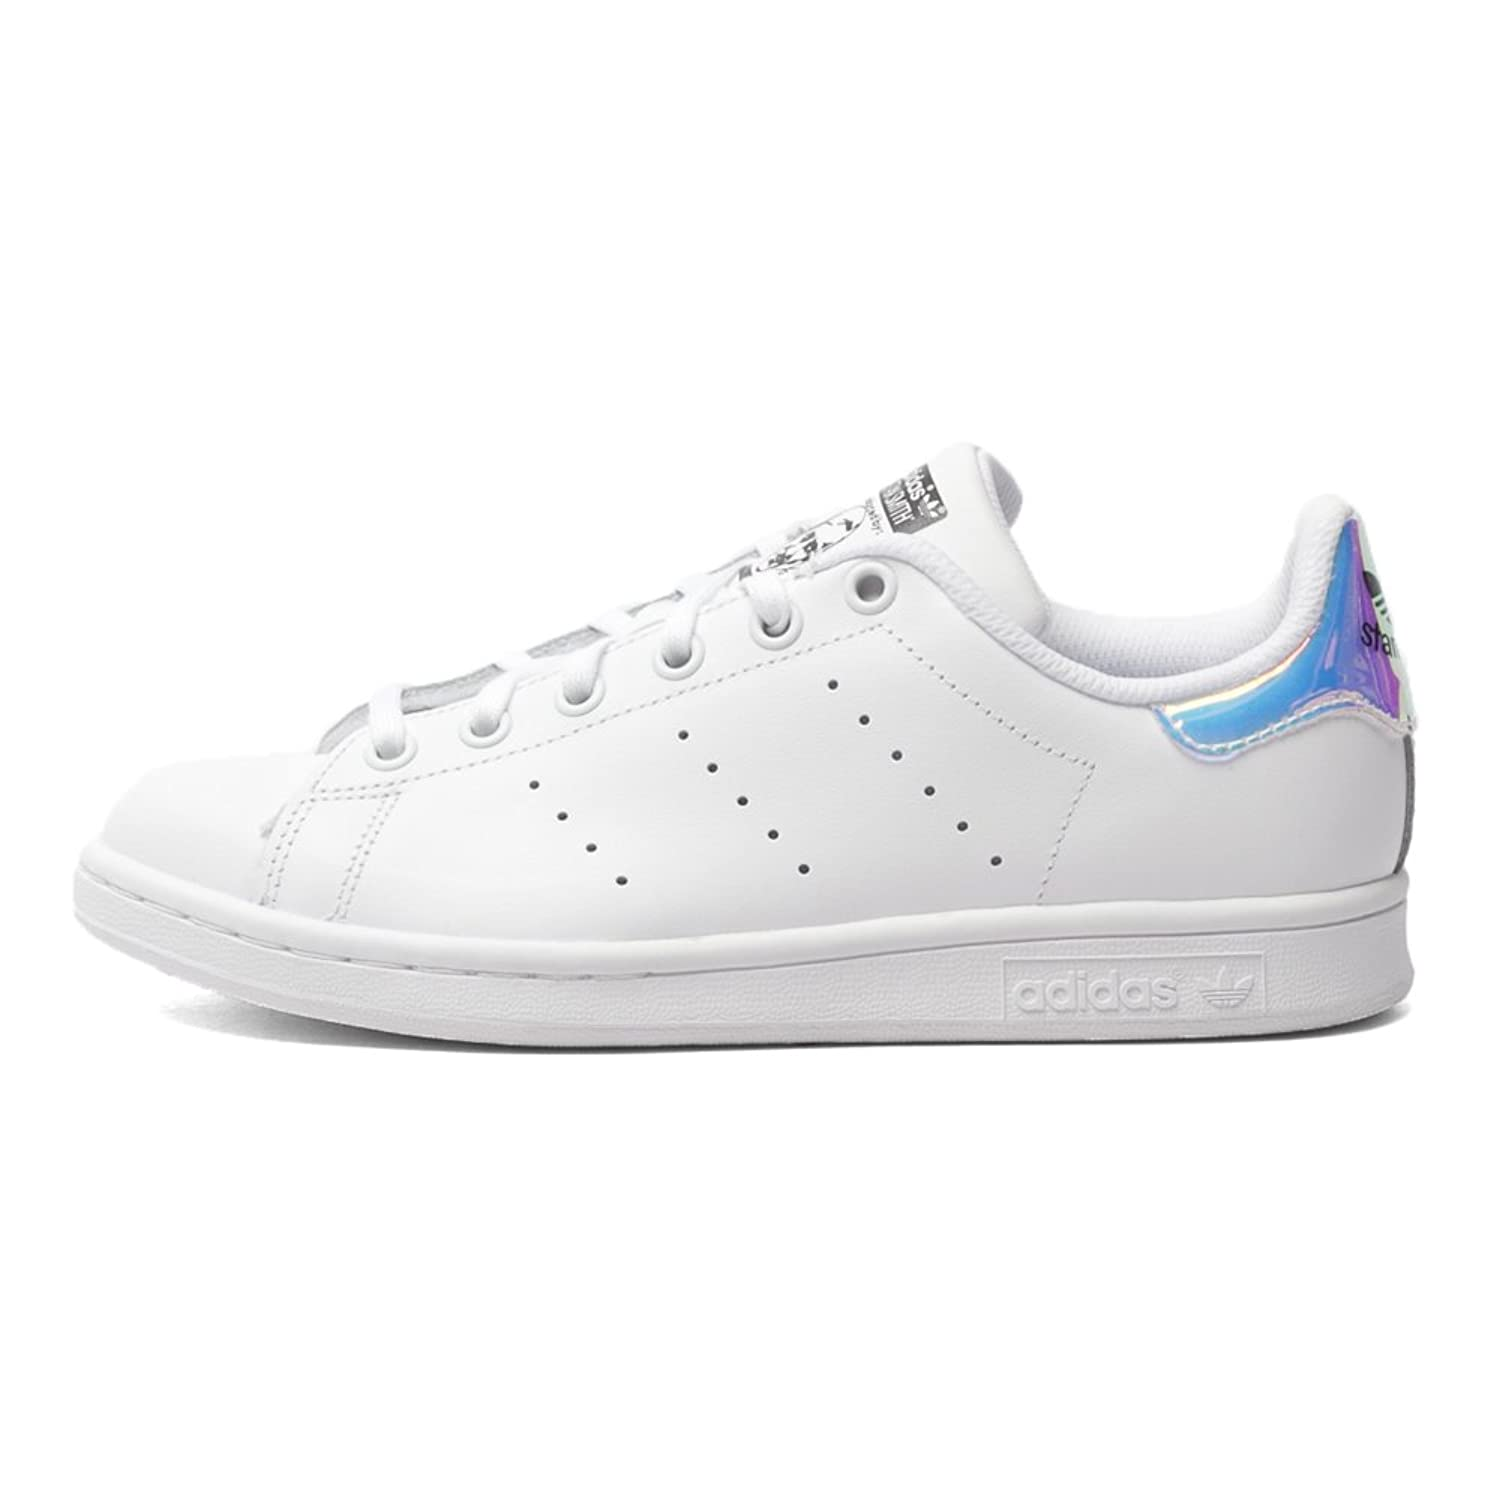 adidas stan smith in saldo